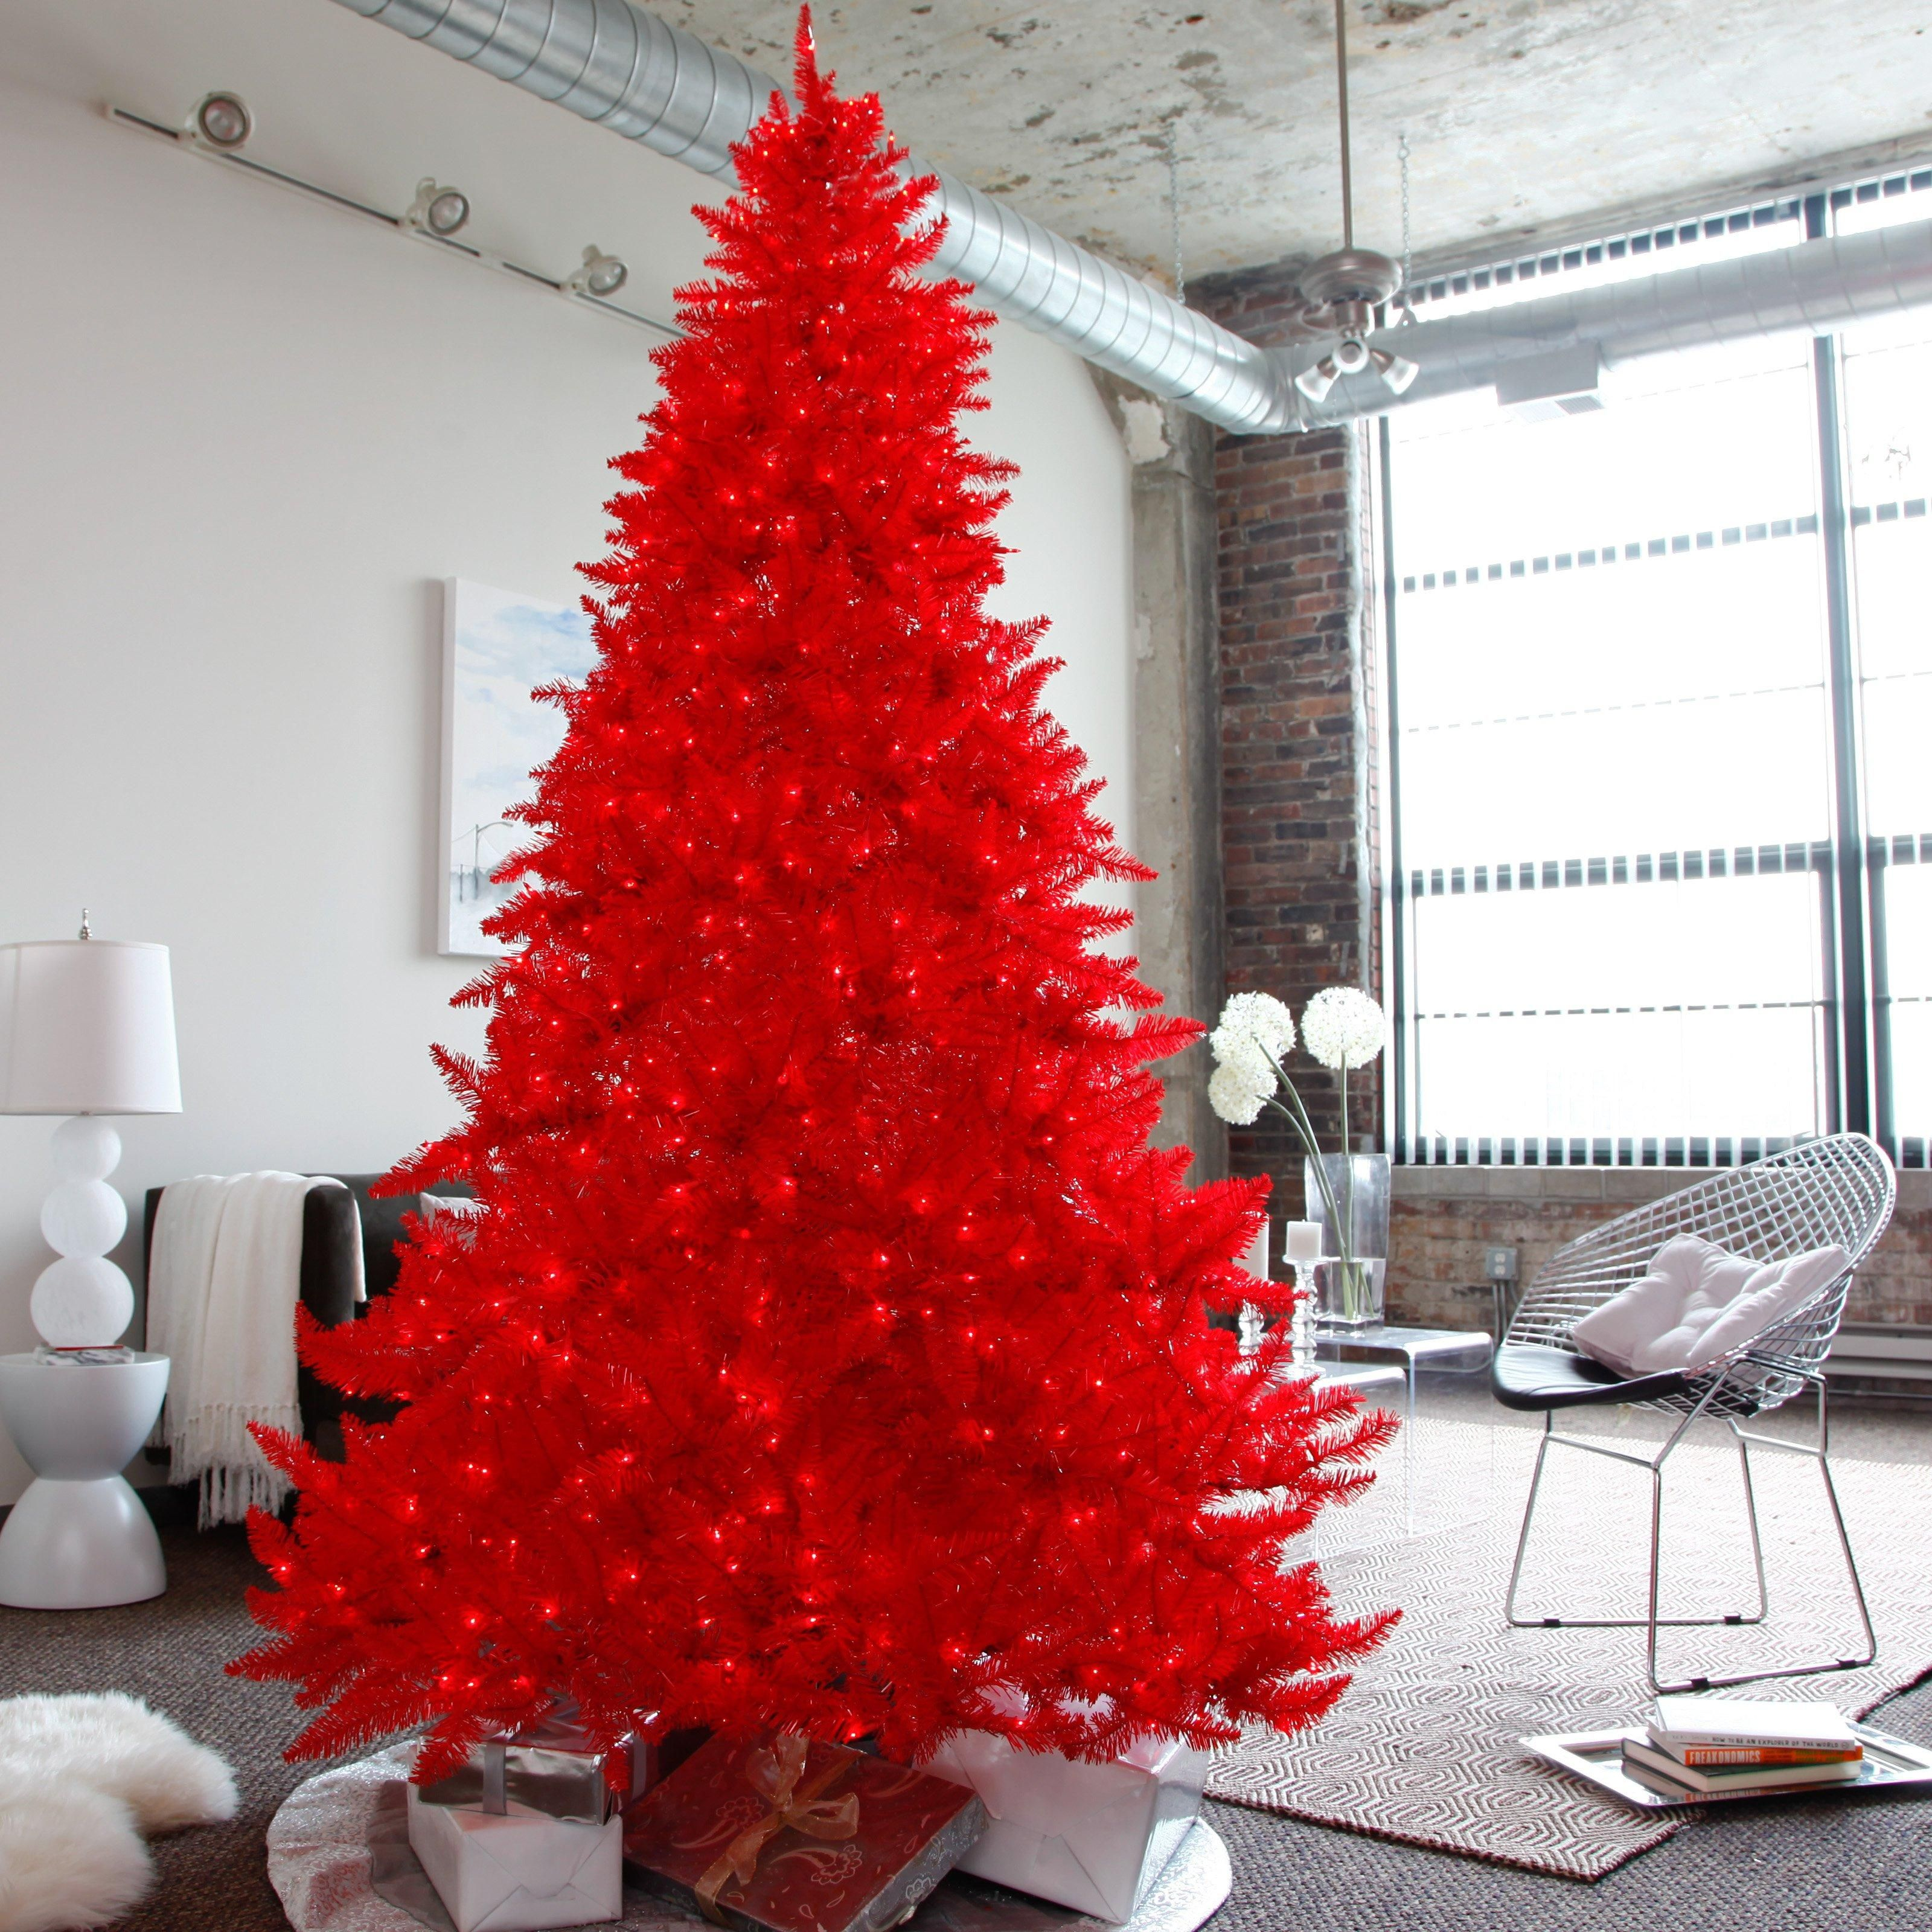 Ashley Red Pre Lit Christmas Tree Www Hayneedle Com Red Christmas Tree Red Christmas Decor Pre Lit Christmas Tree